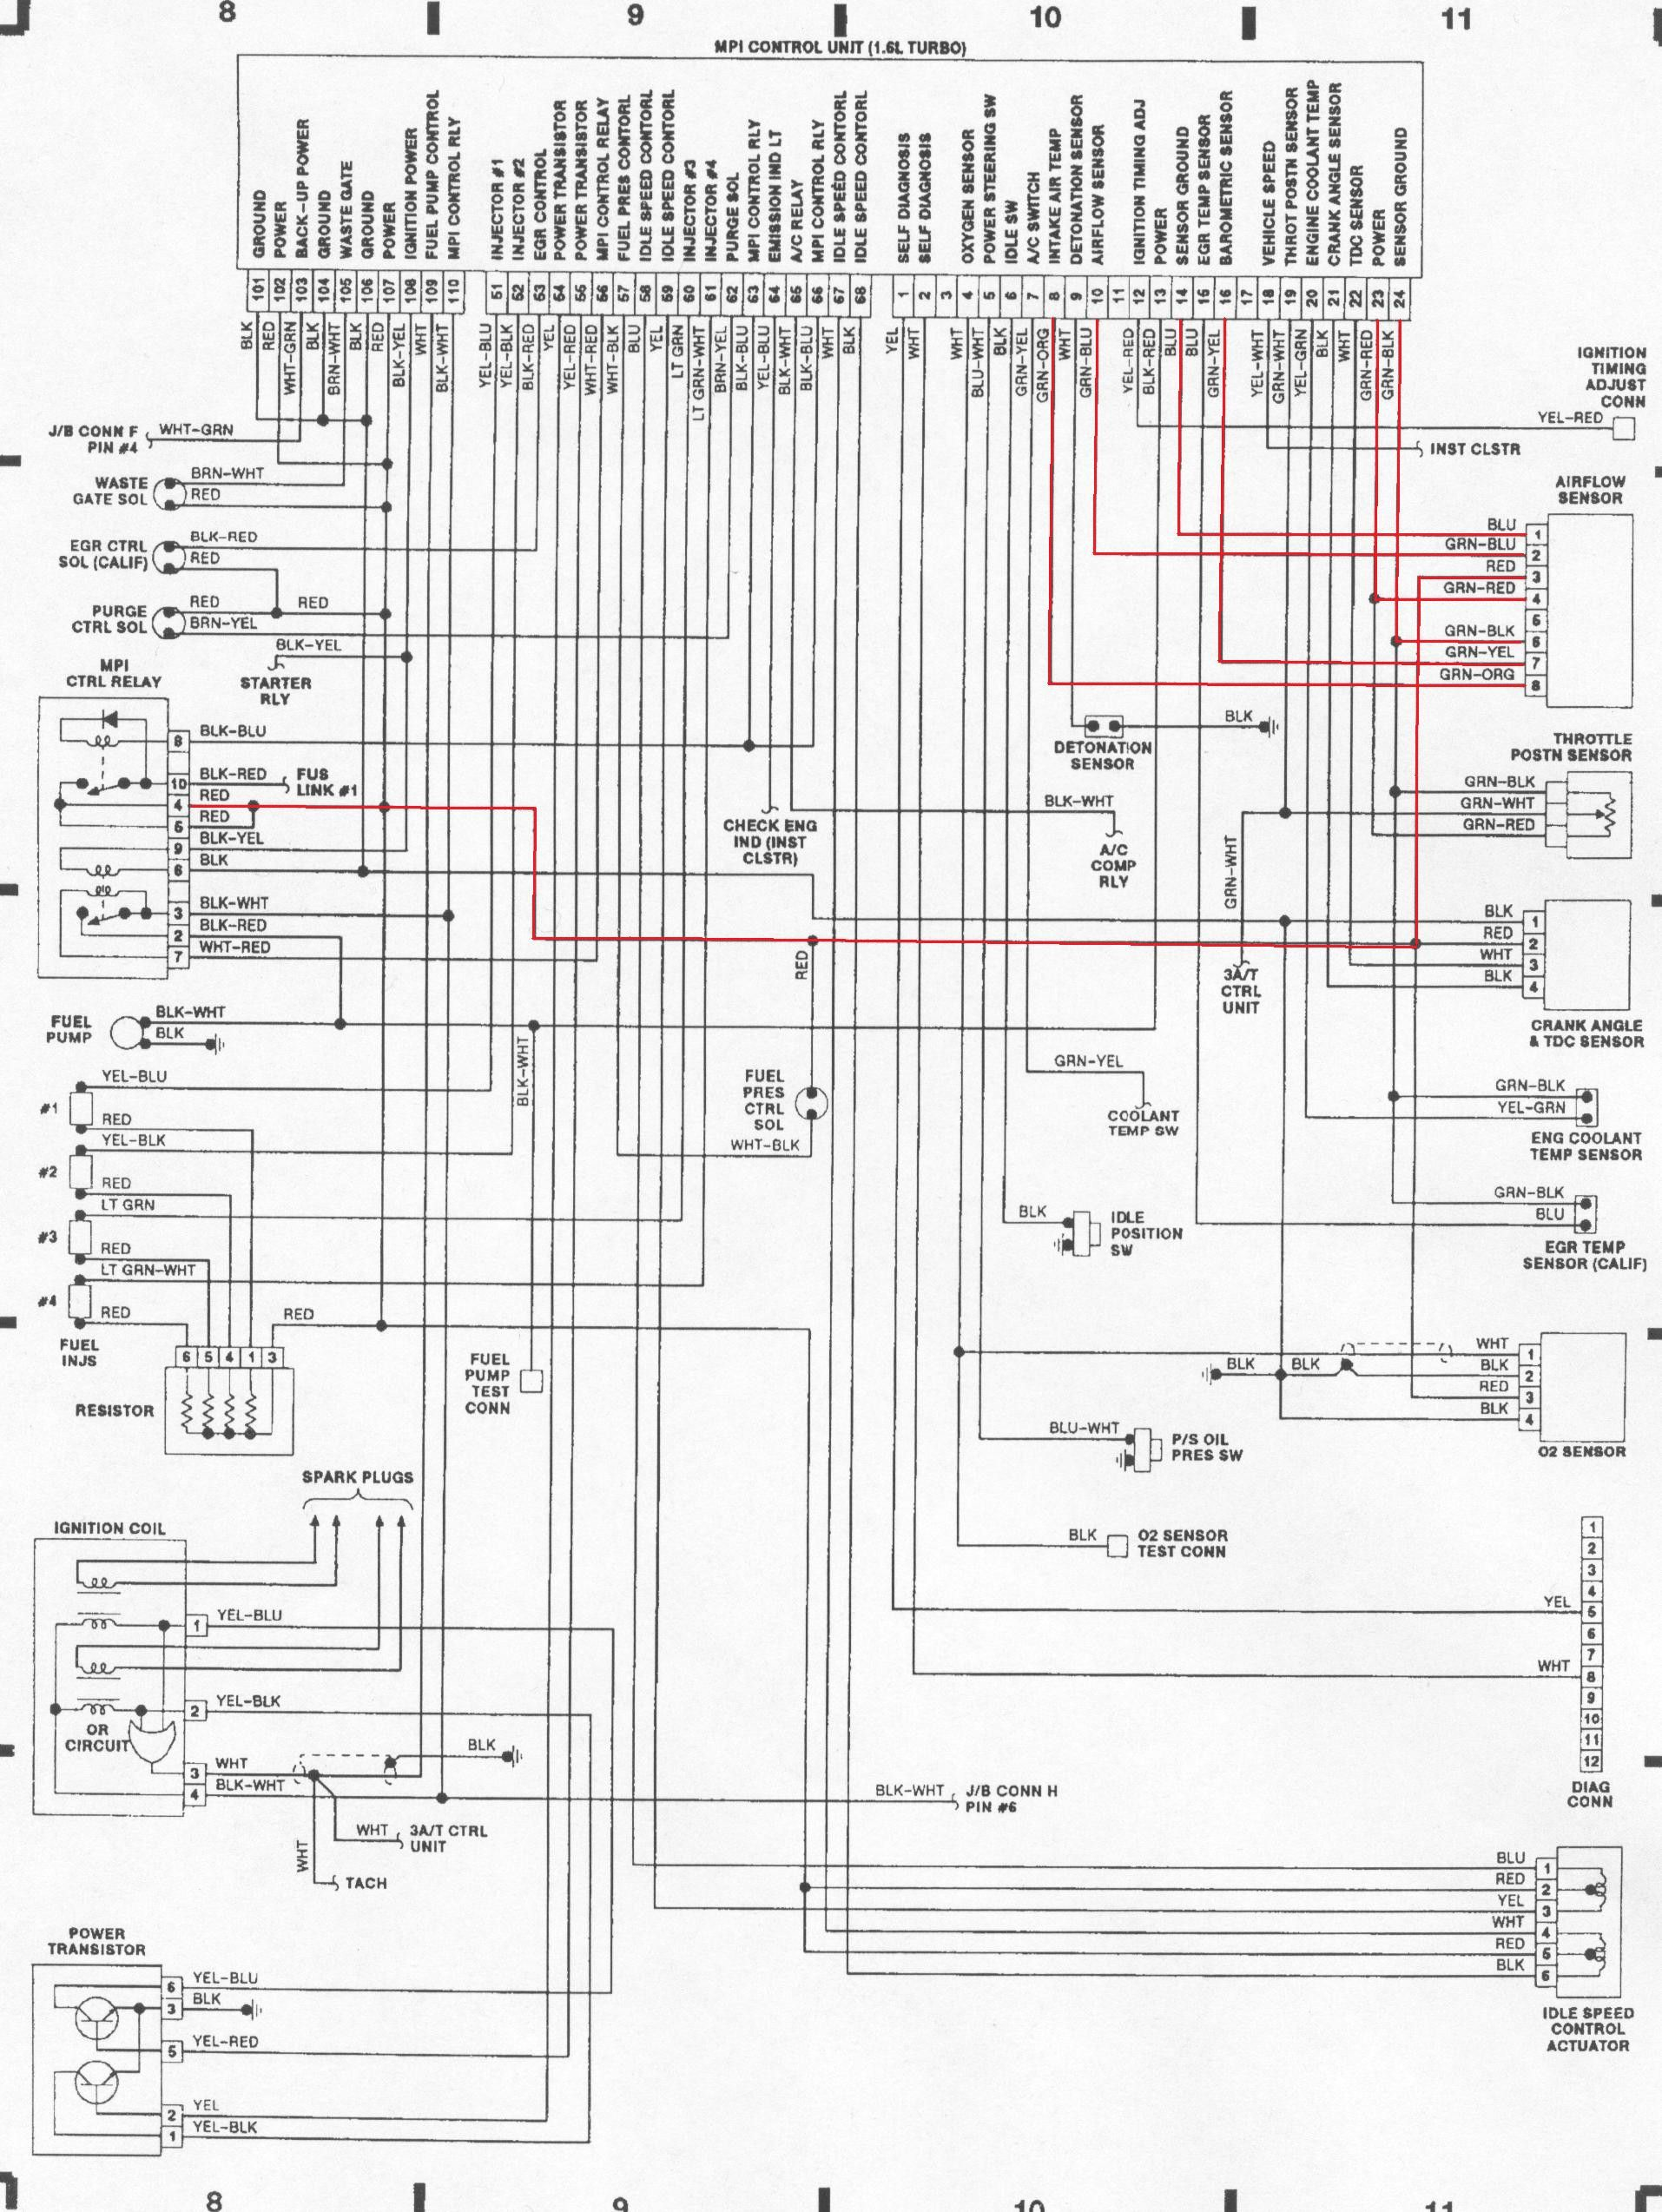 Mitsubishi 4g15 Wiring Diagram - Wiring Diagram K7 on